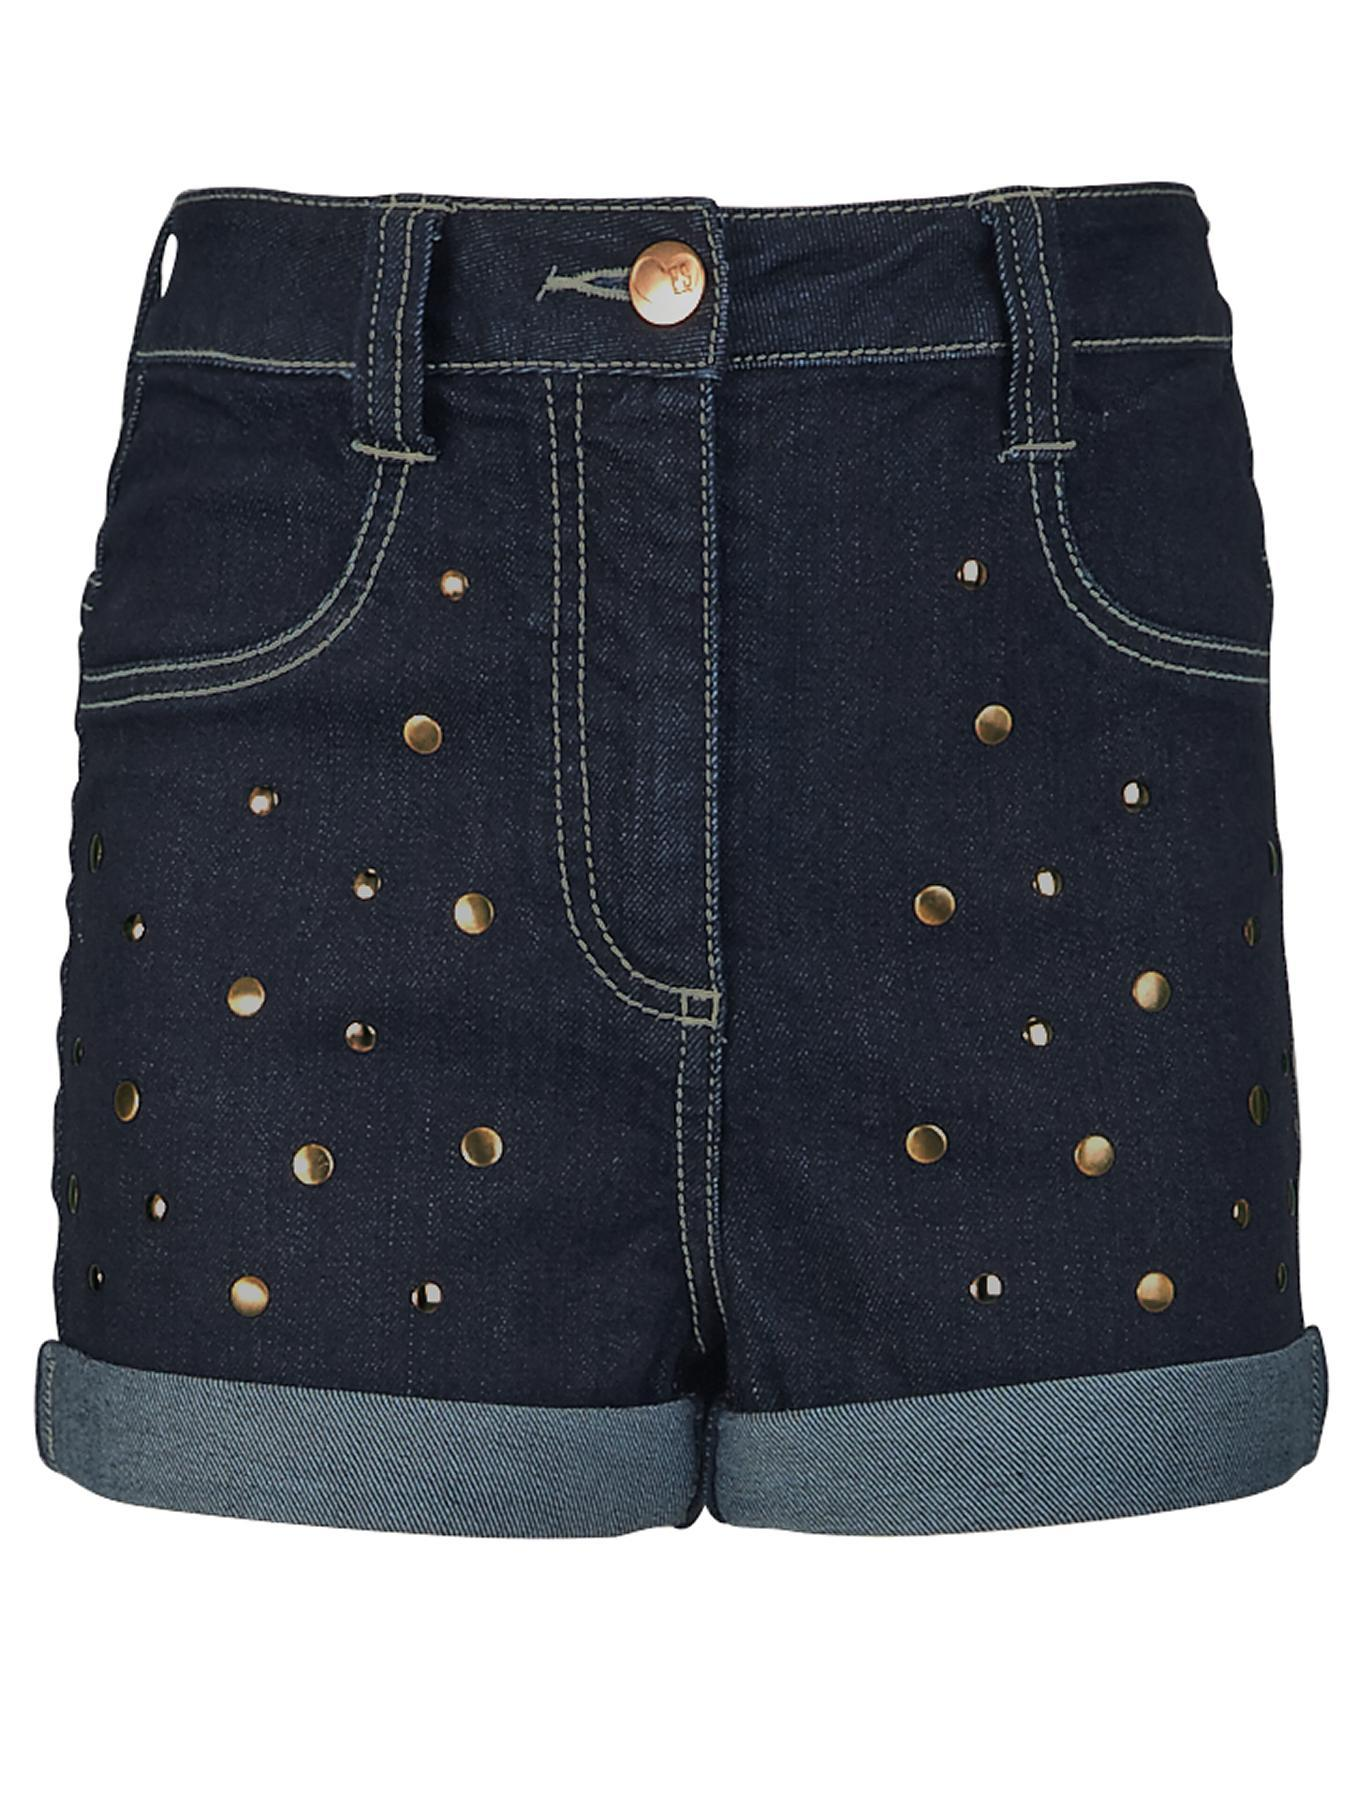 Girls High Waisted Studded Shorts.